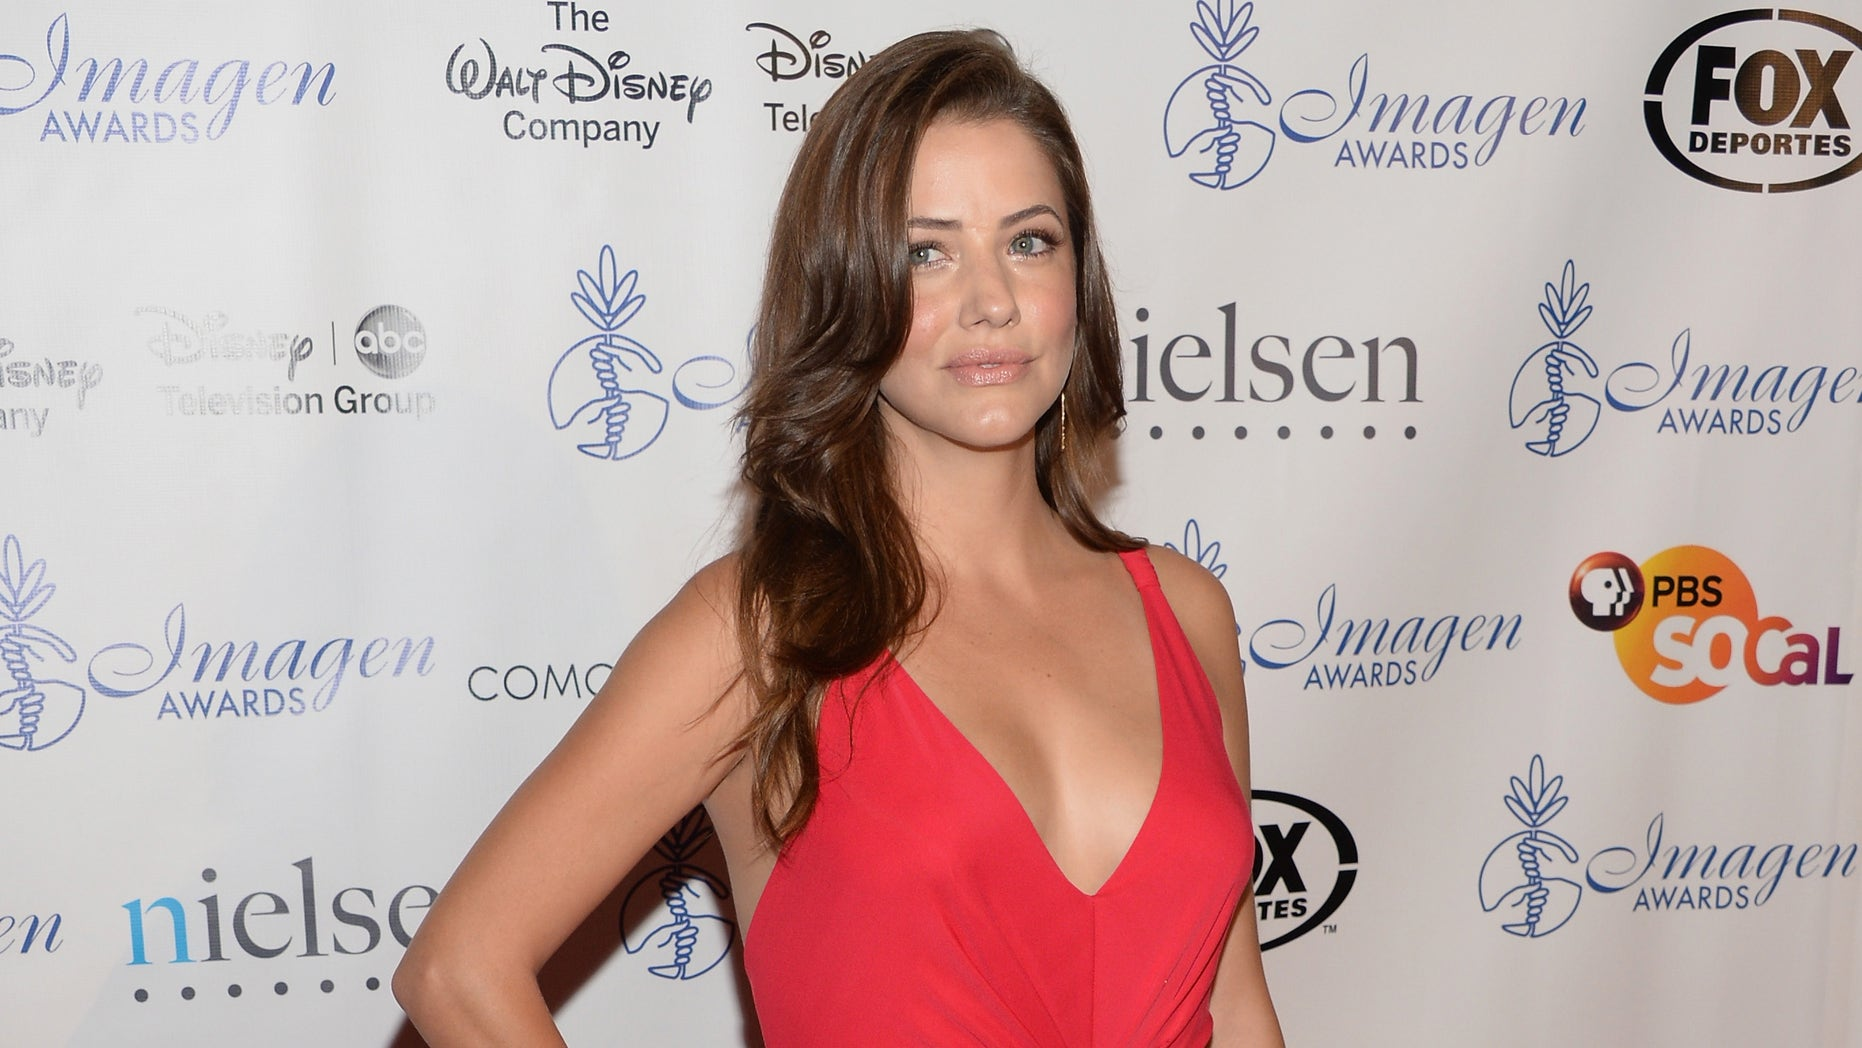 BEVERLY HILLS, CA - AUGUST 16:  Julie Gonzalo attends the 28th Annual Imagen Awards at The Beverly Hilton Hotel on August 16, 2013 in Beverly Hills, California.  (Photo by Jason Kempin/Getty Images)